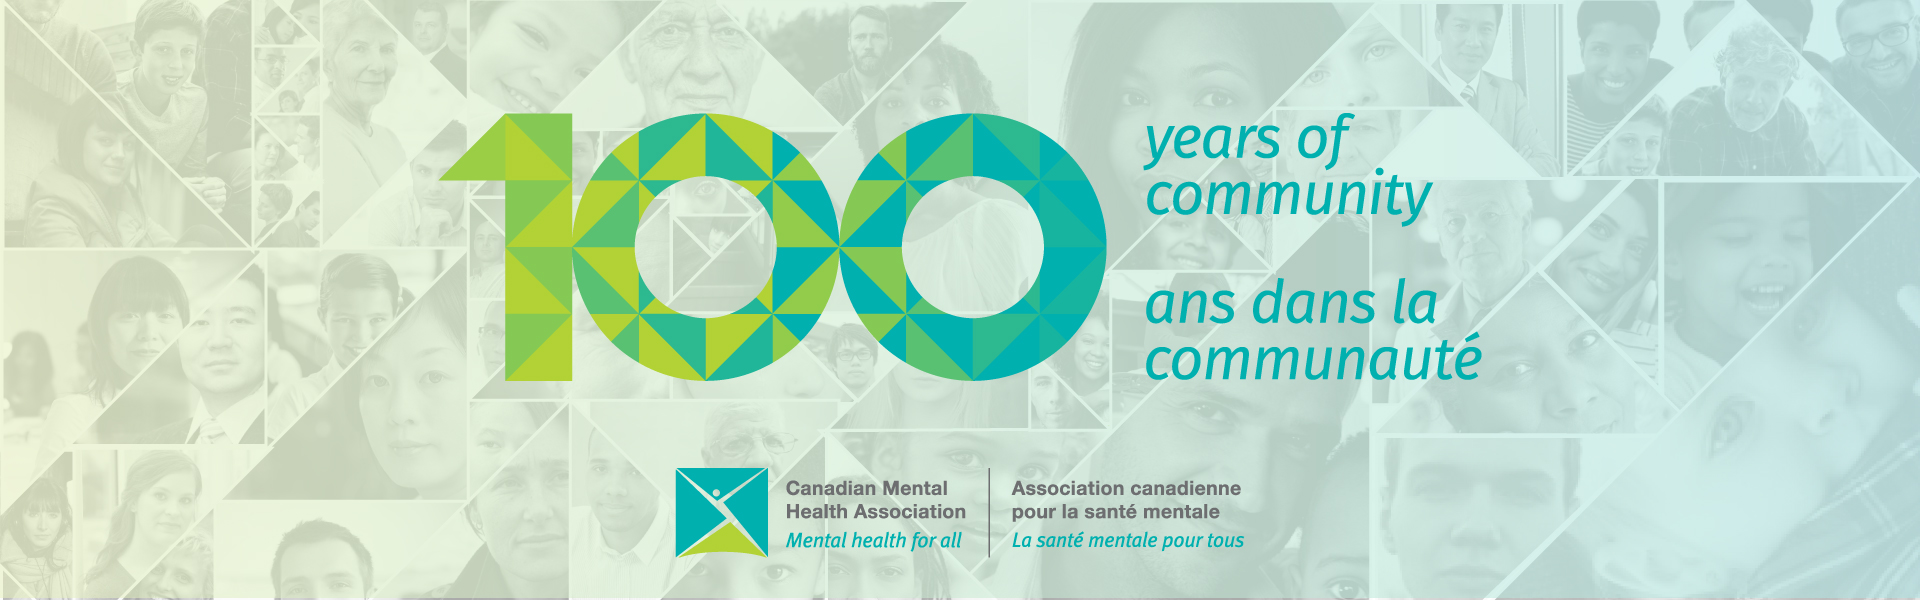 CMHA celebrates 100 years of community